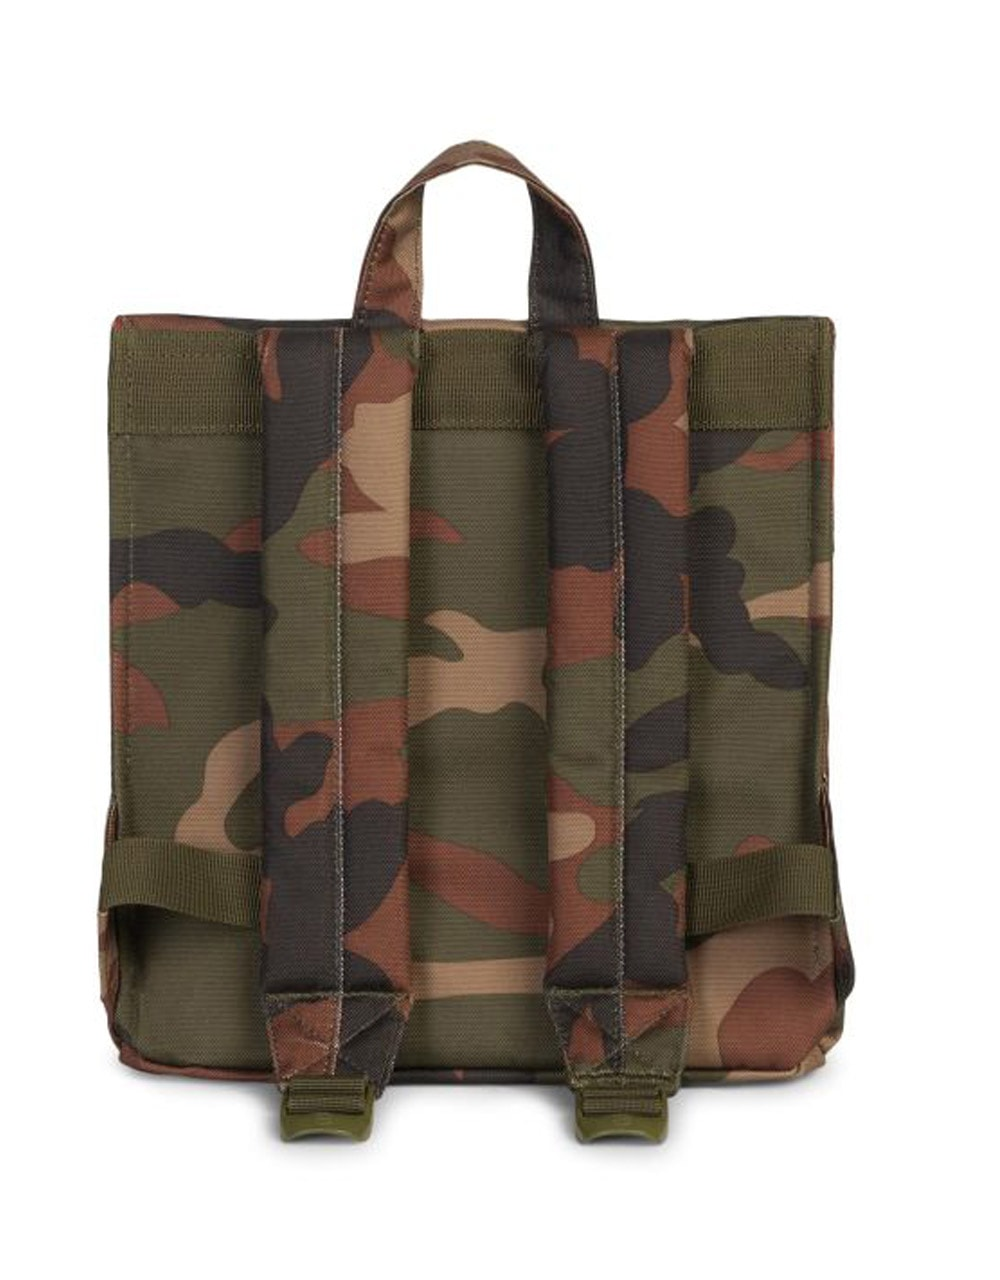 HERSCHEL рюкзак детский SURVEY Kids WOODLAND CAMO, 5.5L